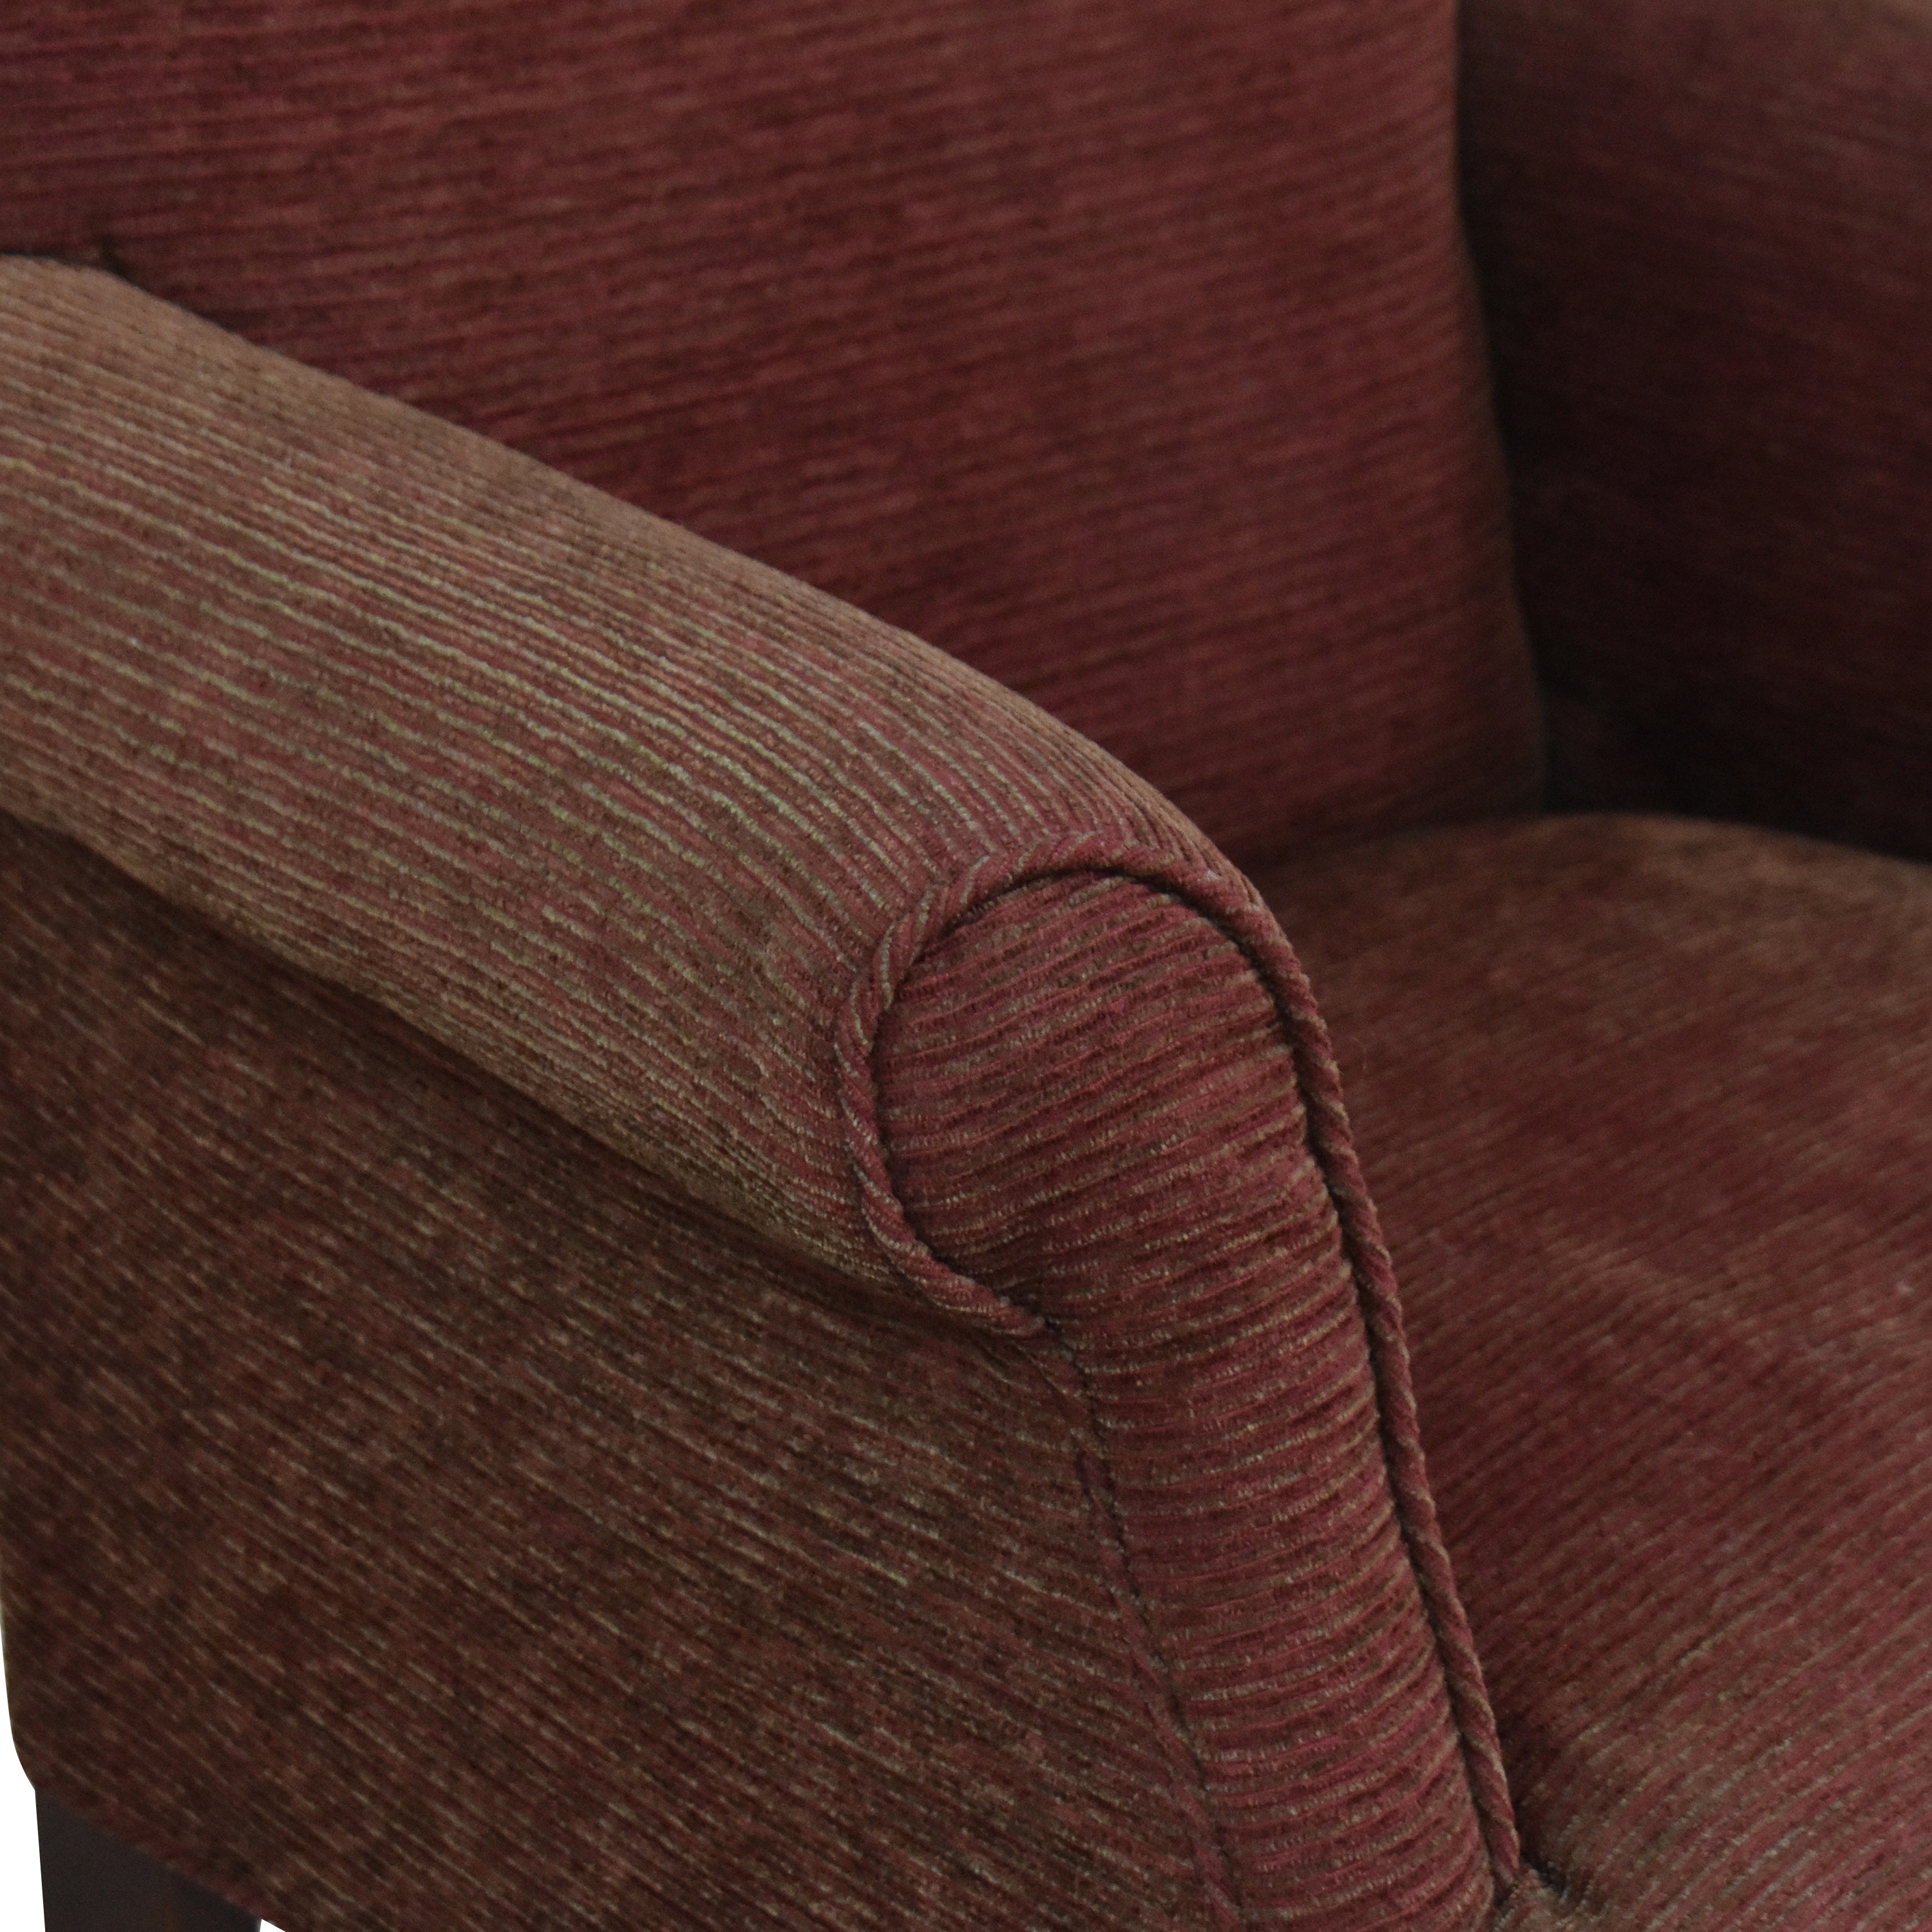 Crate & Barrel Crate & Barrel Upholstered Arm Chair dimensions